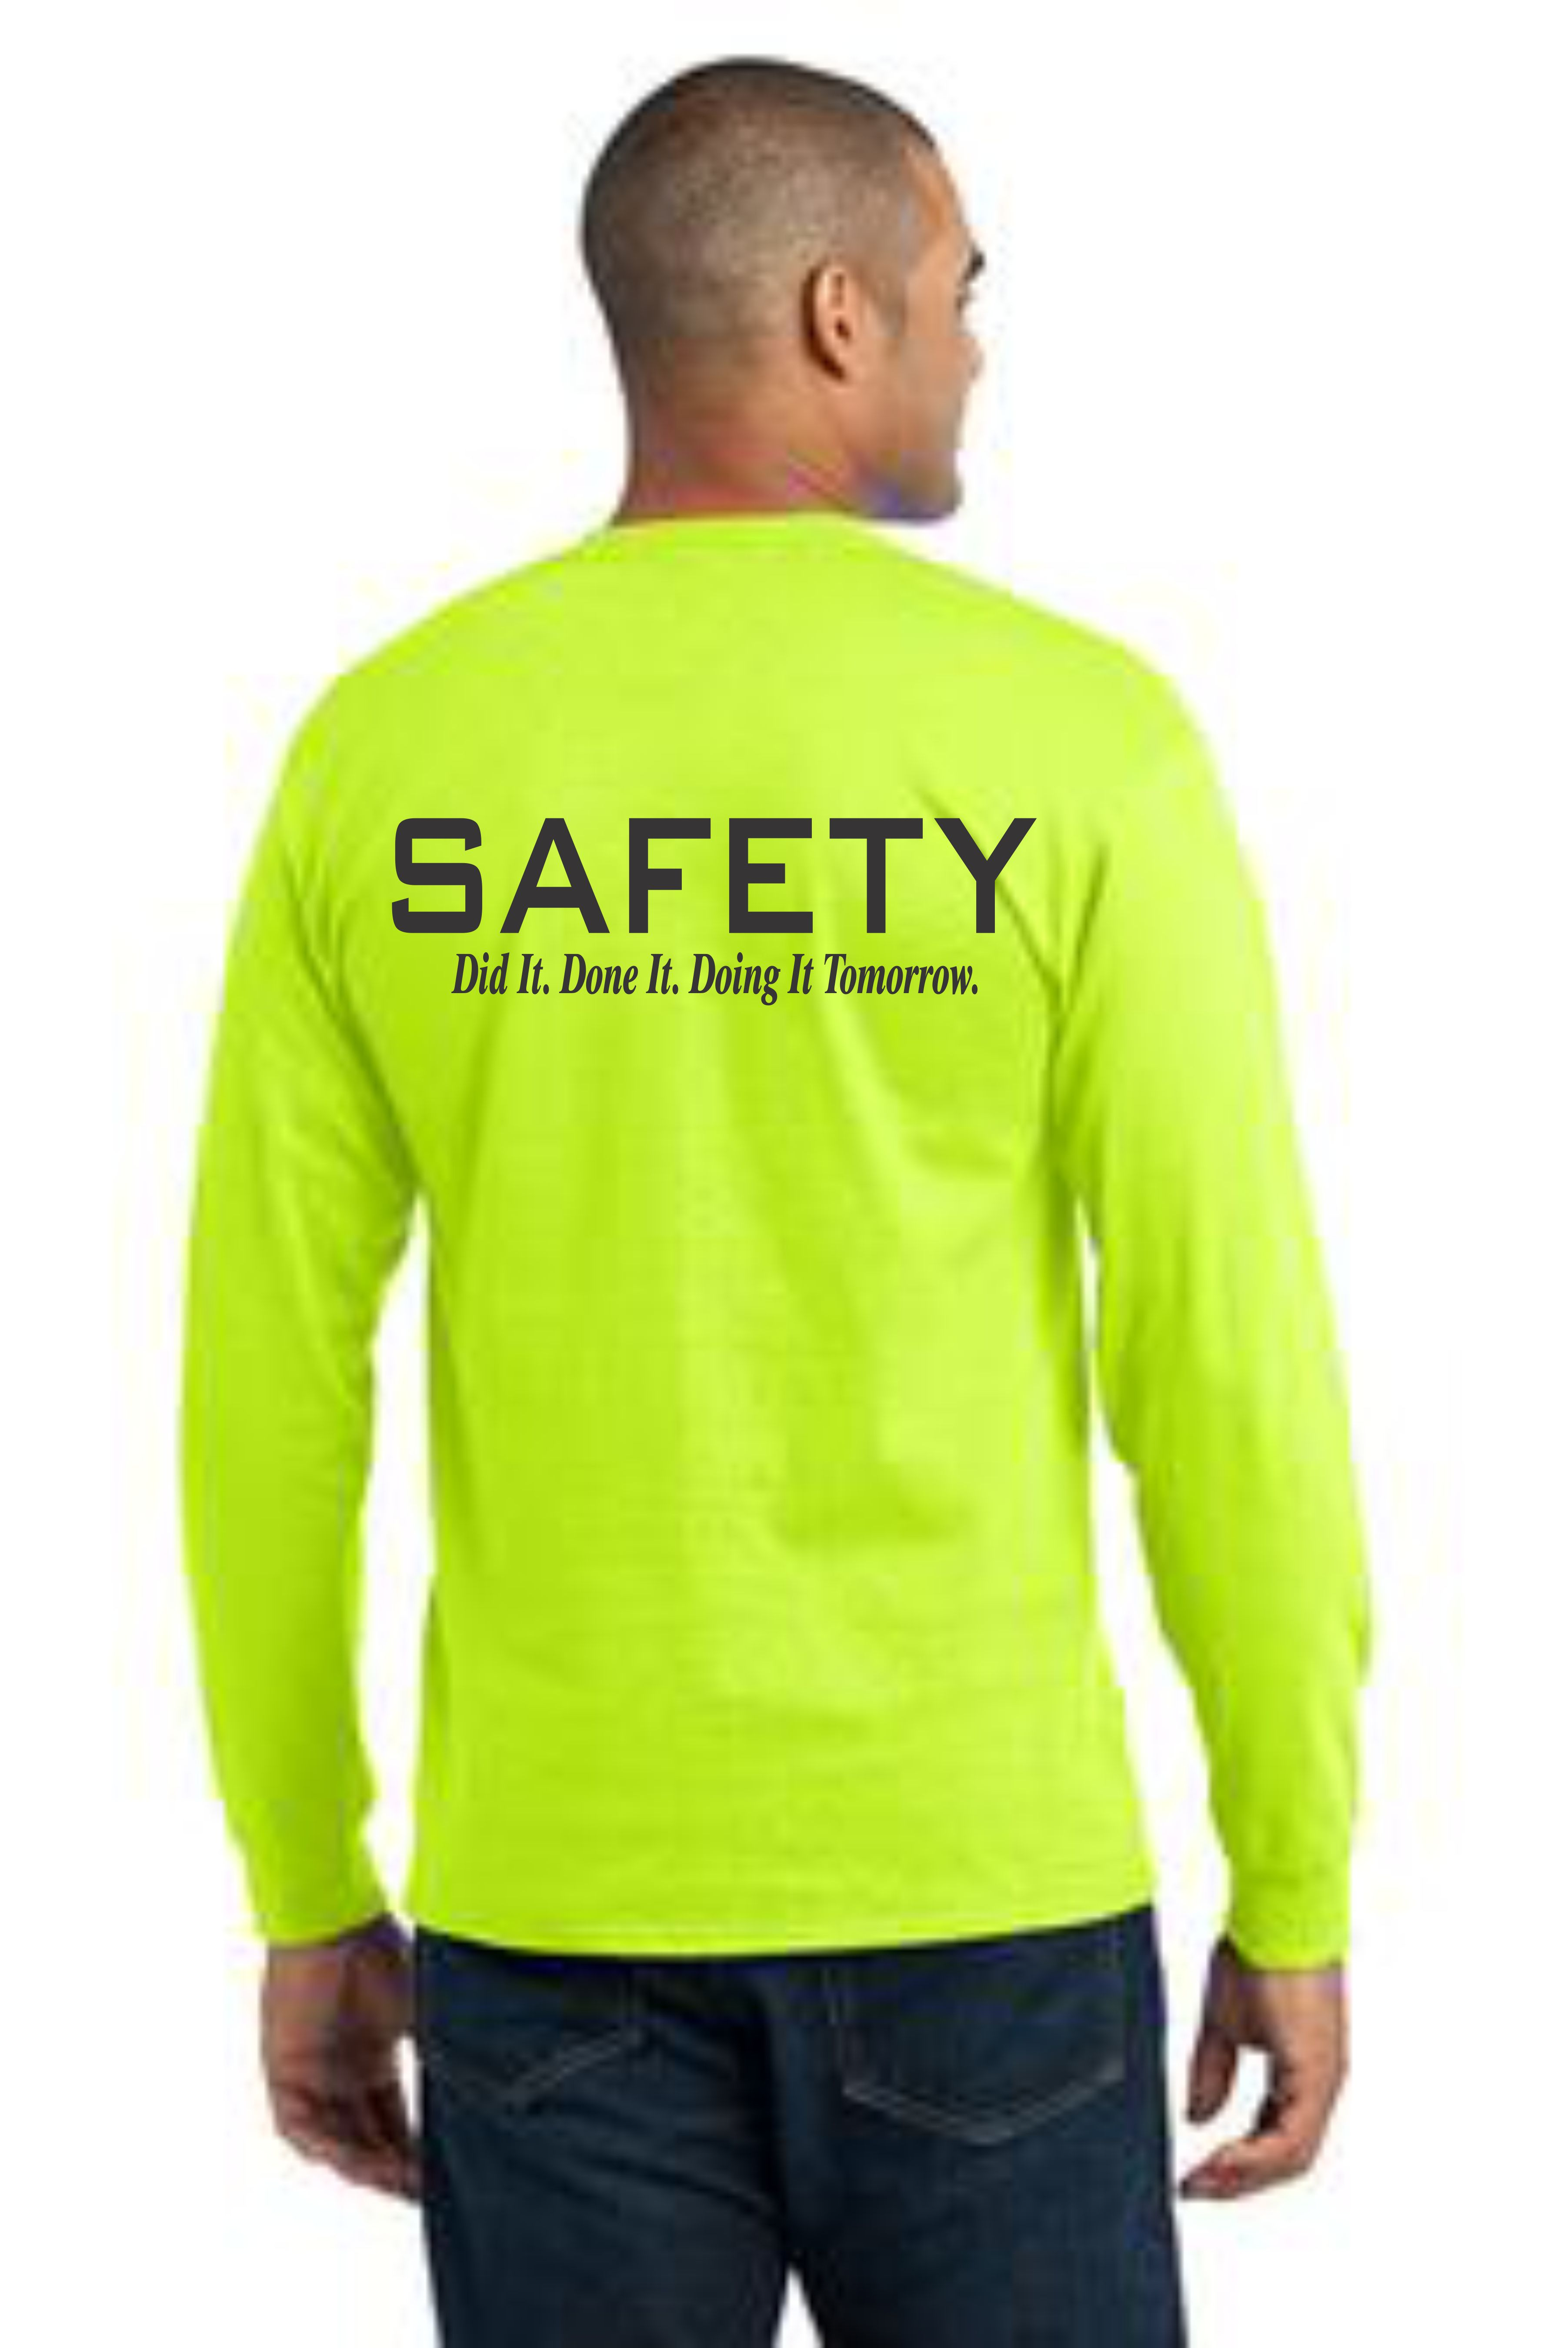 LONG SLEEVE SAFETY T-SHIRT -- DID IT. DONE IT. DOING IT TOMORROW.